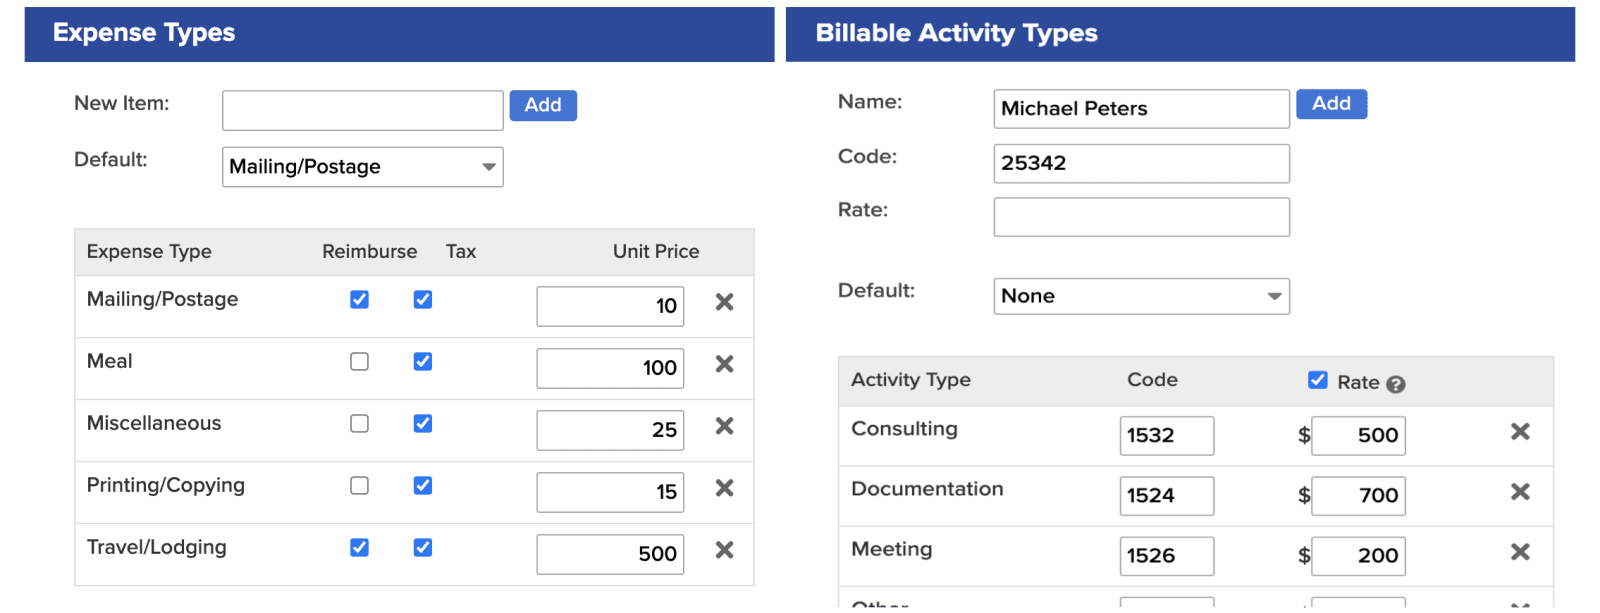 bill4time billable activity and expense type image